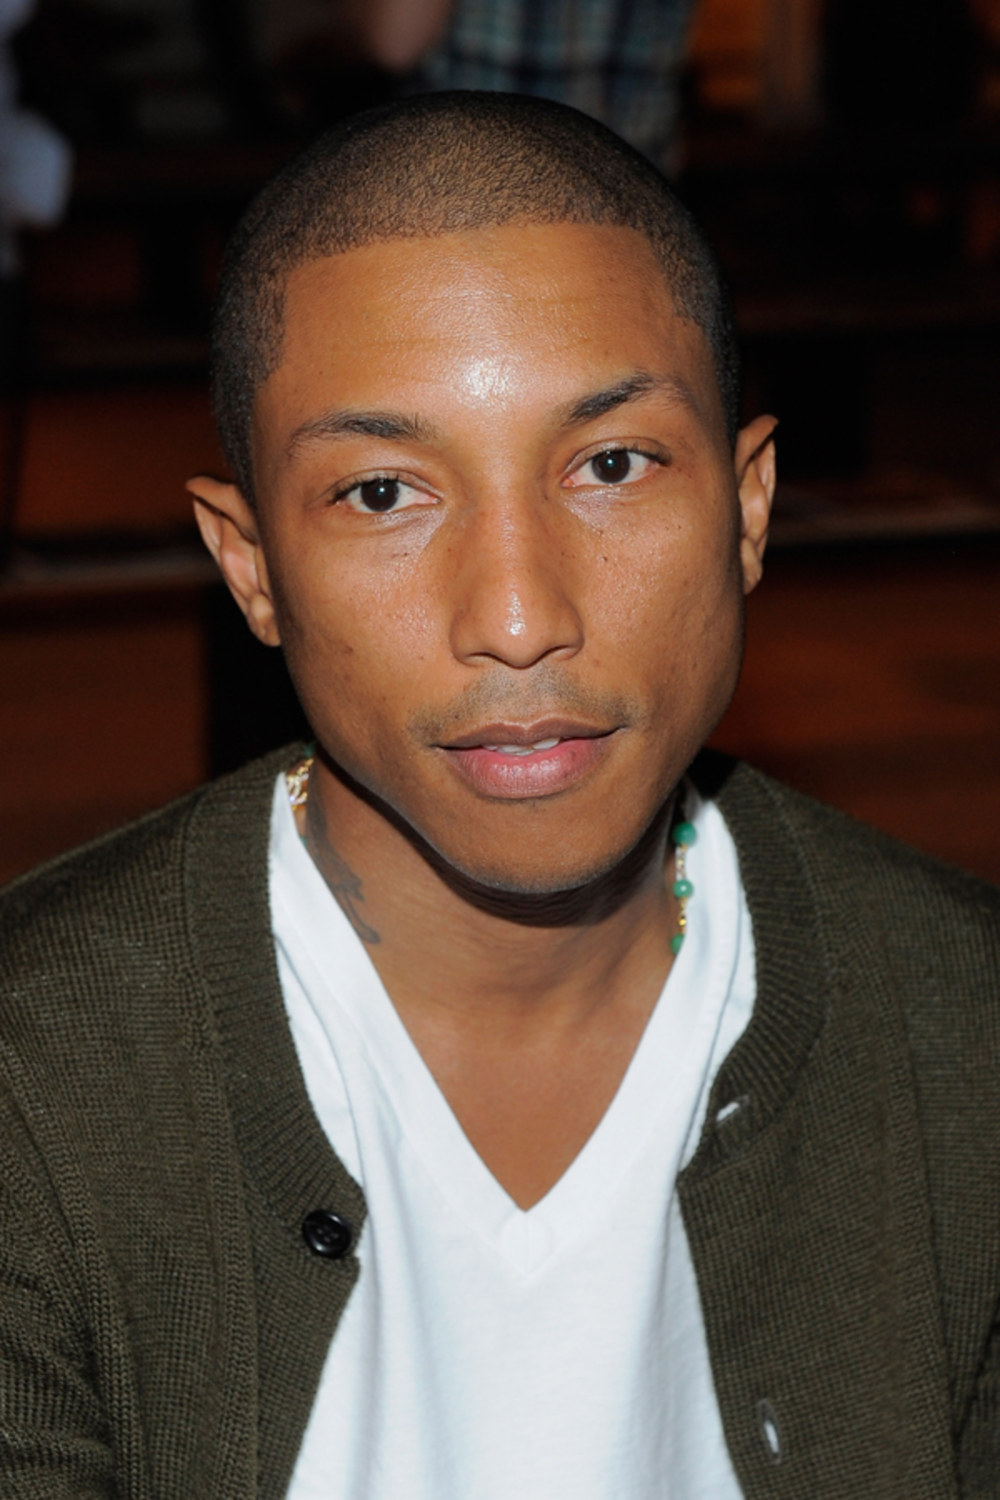 <b>CFDA HONOURS PHARREL...</b>